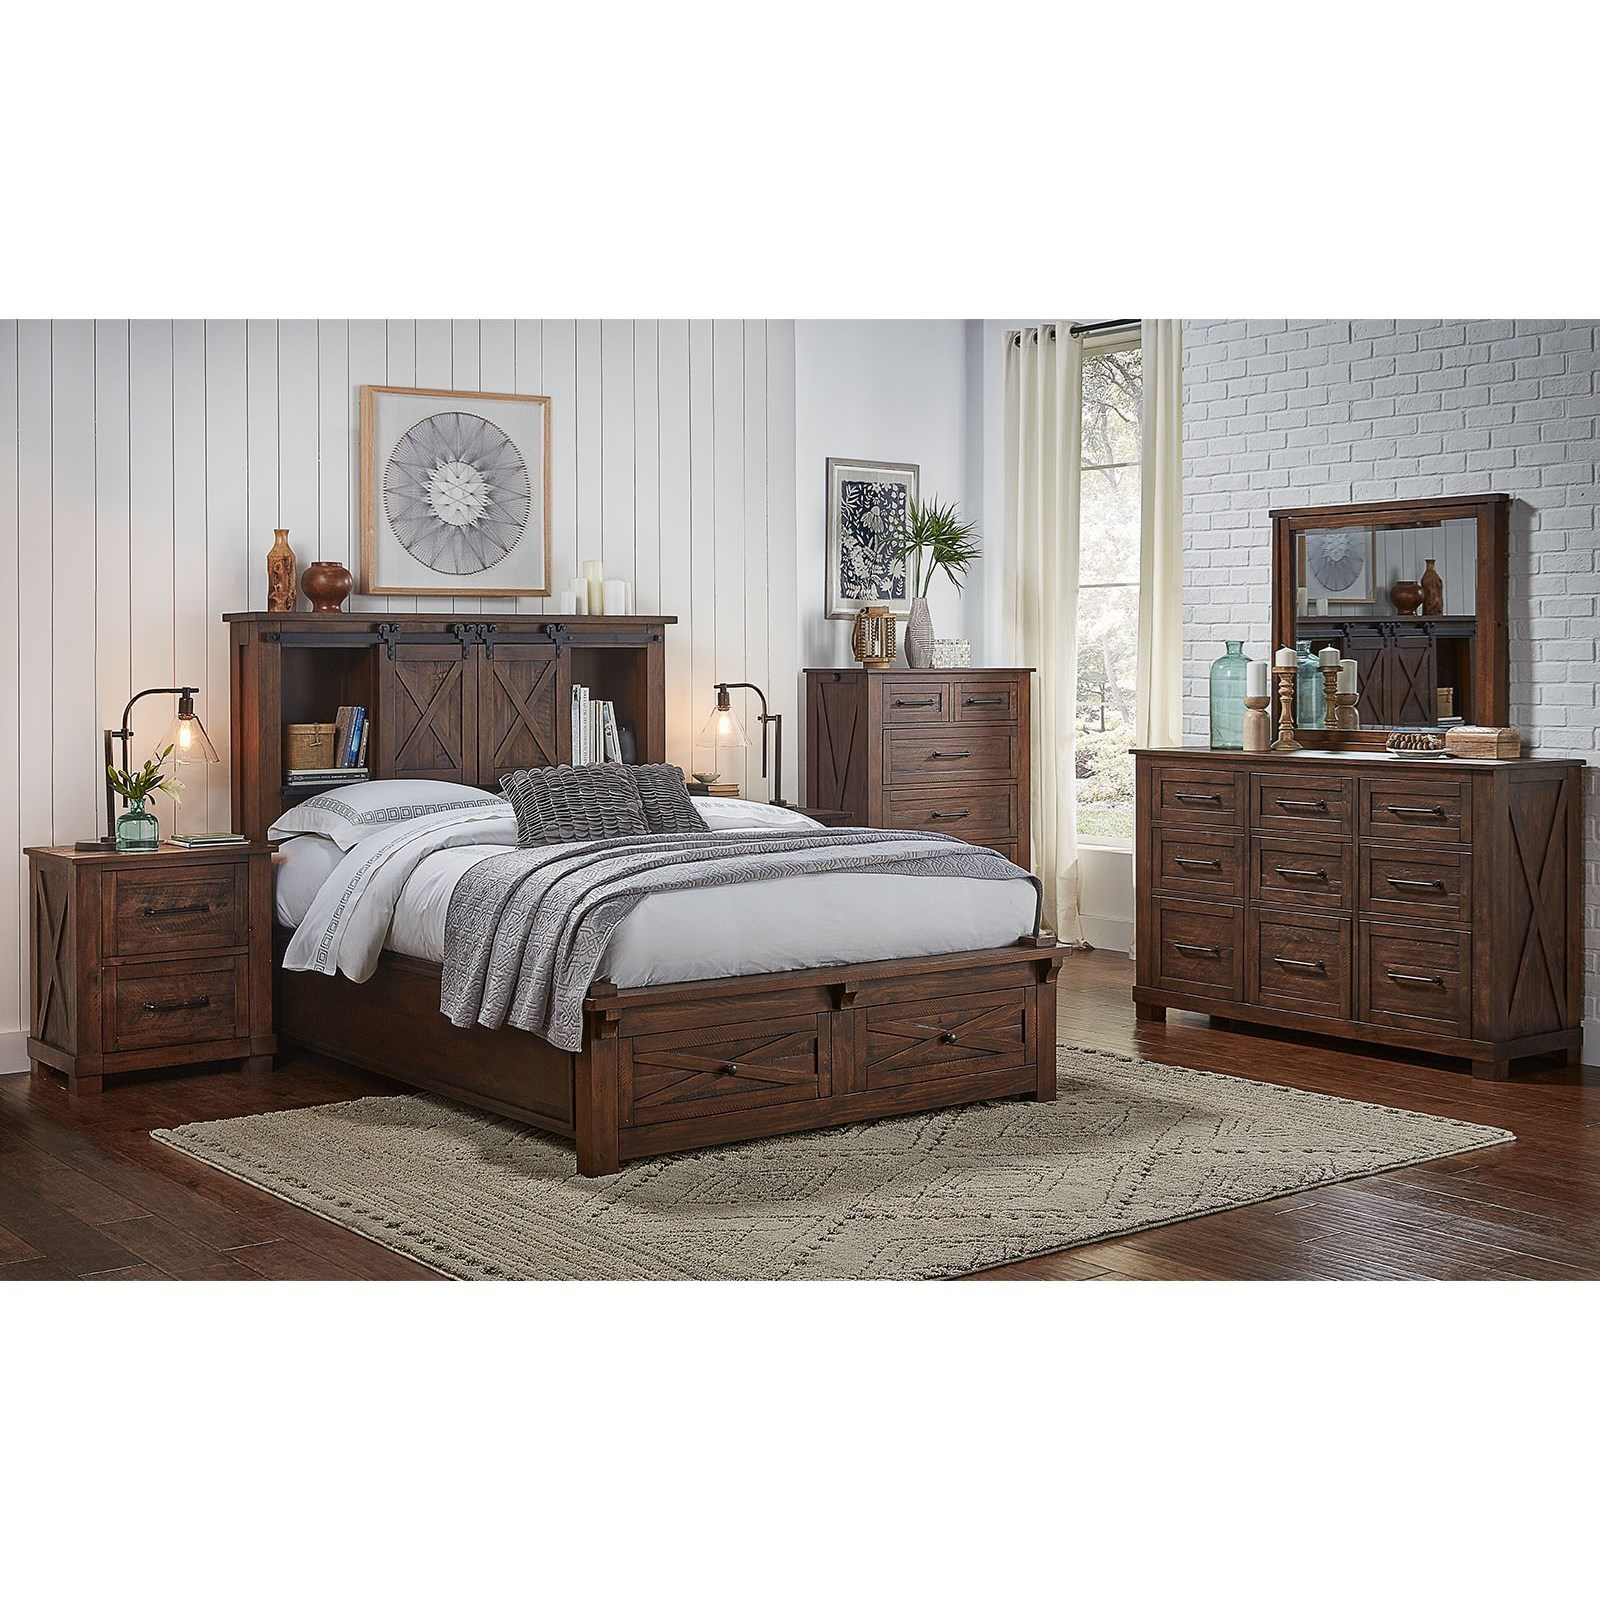 AAmerica Sun Valley King Storage Bed with Footboard Bench ...